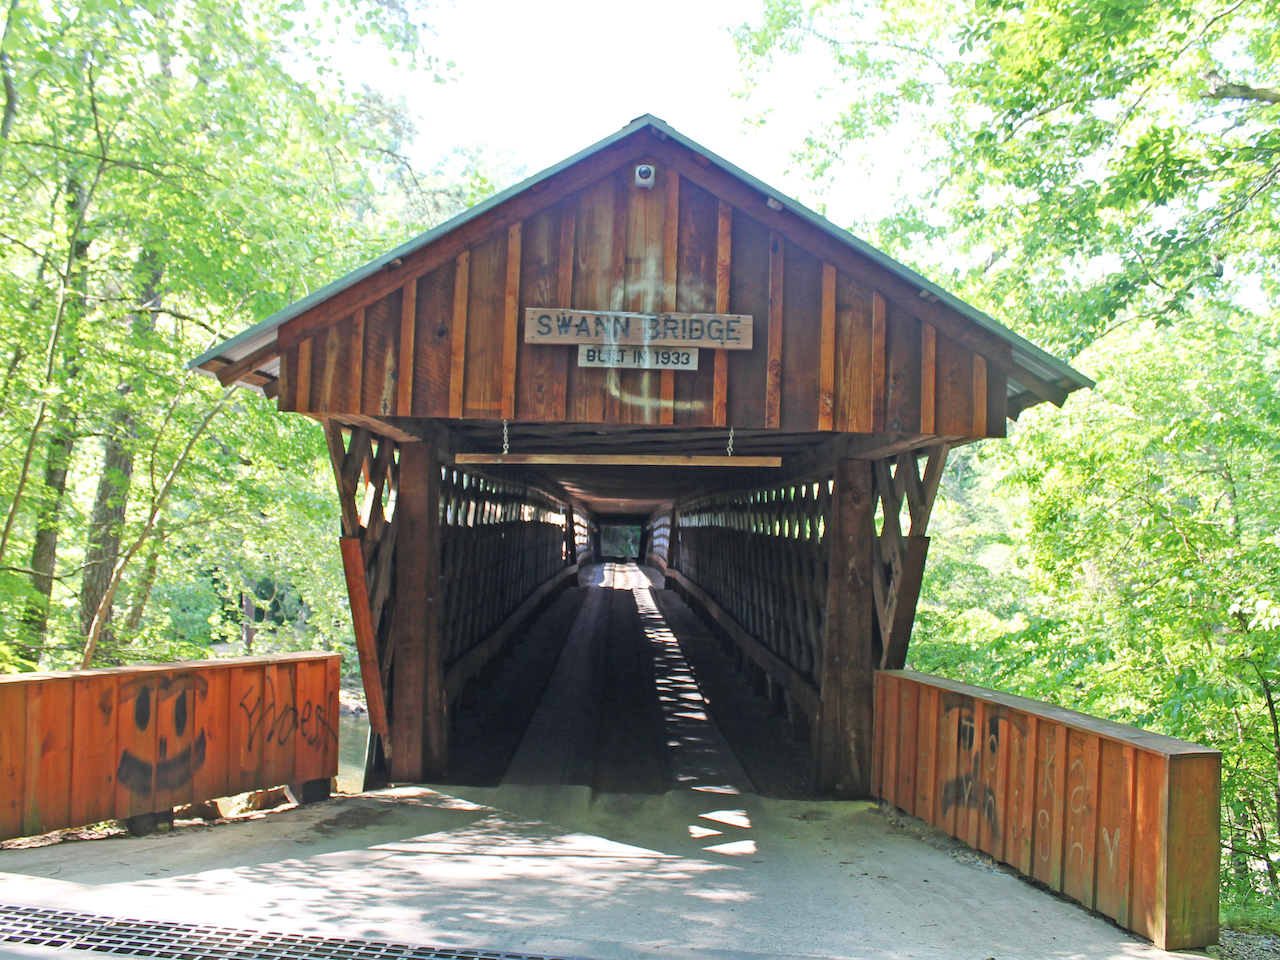 At 324 feet long, this Alabama bridge is one of the longest covered bridges in the United States.